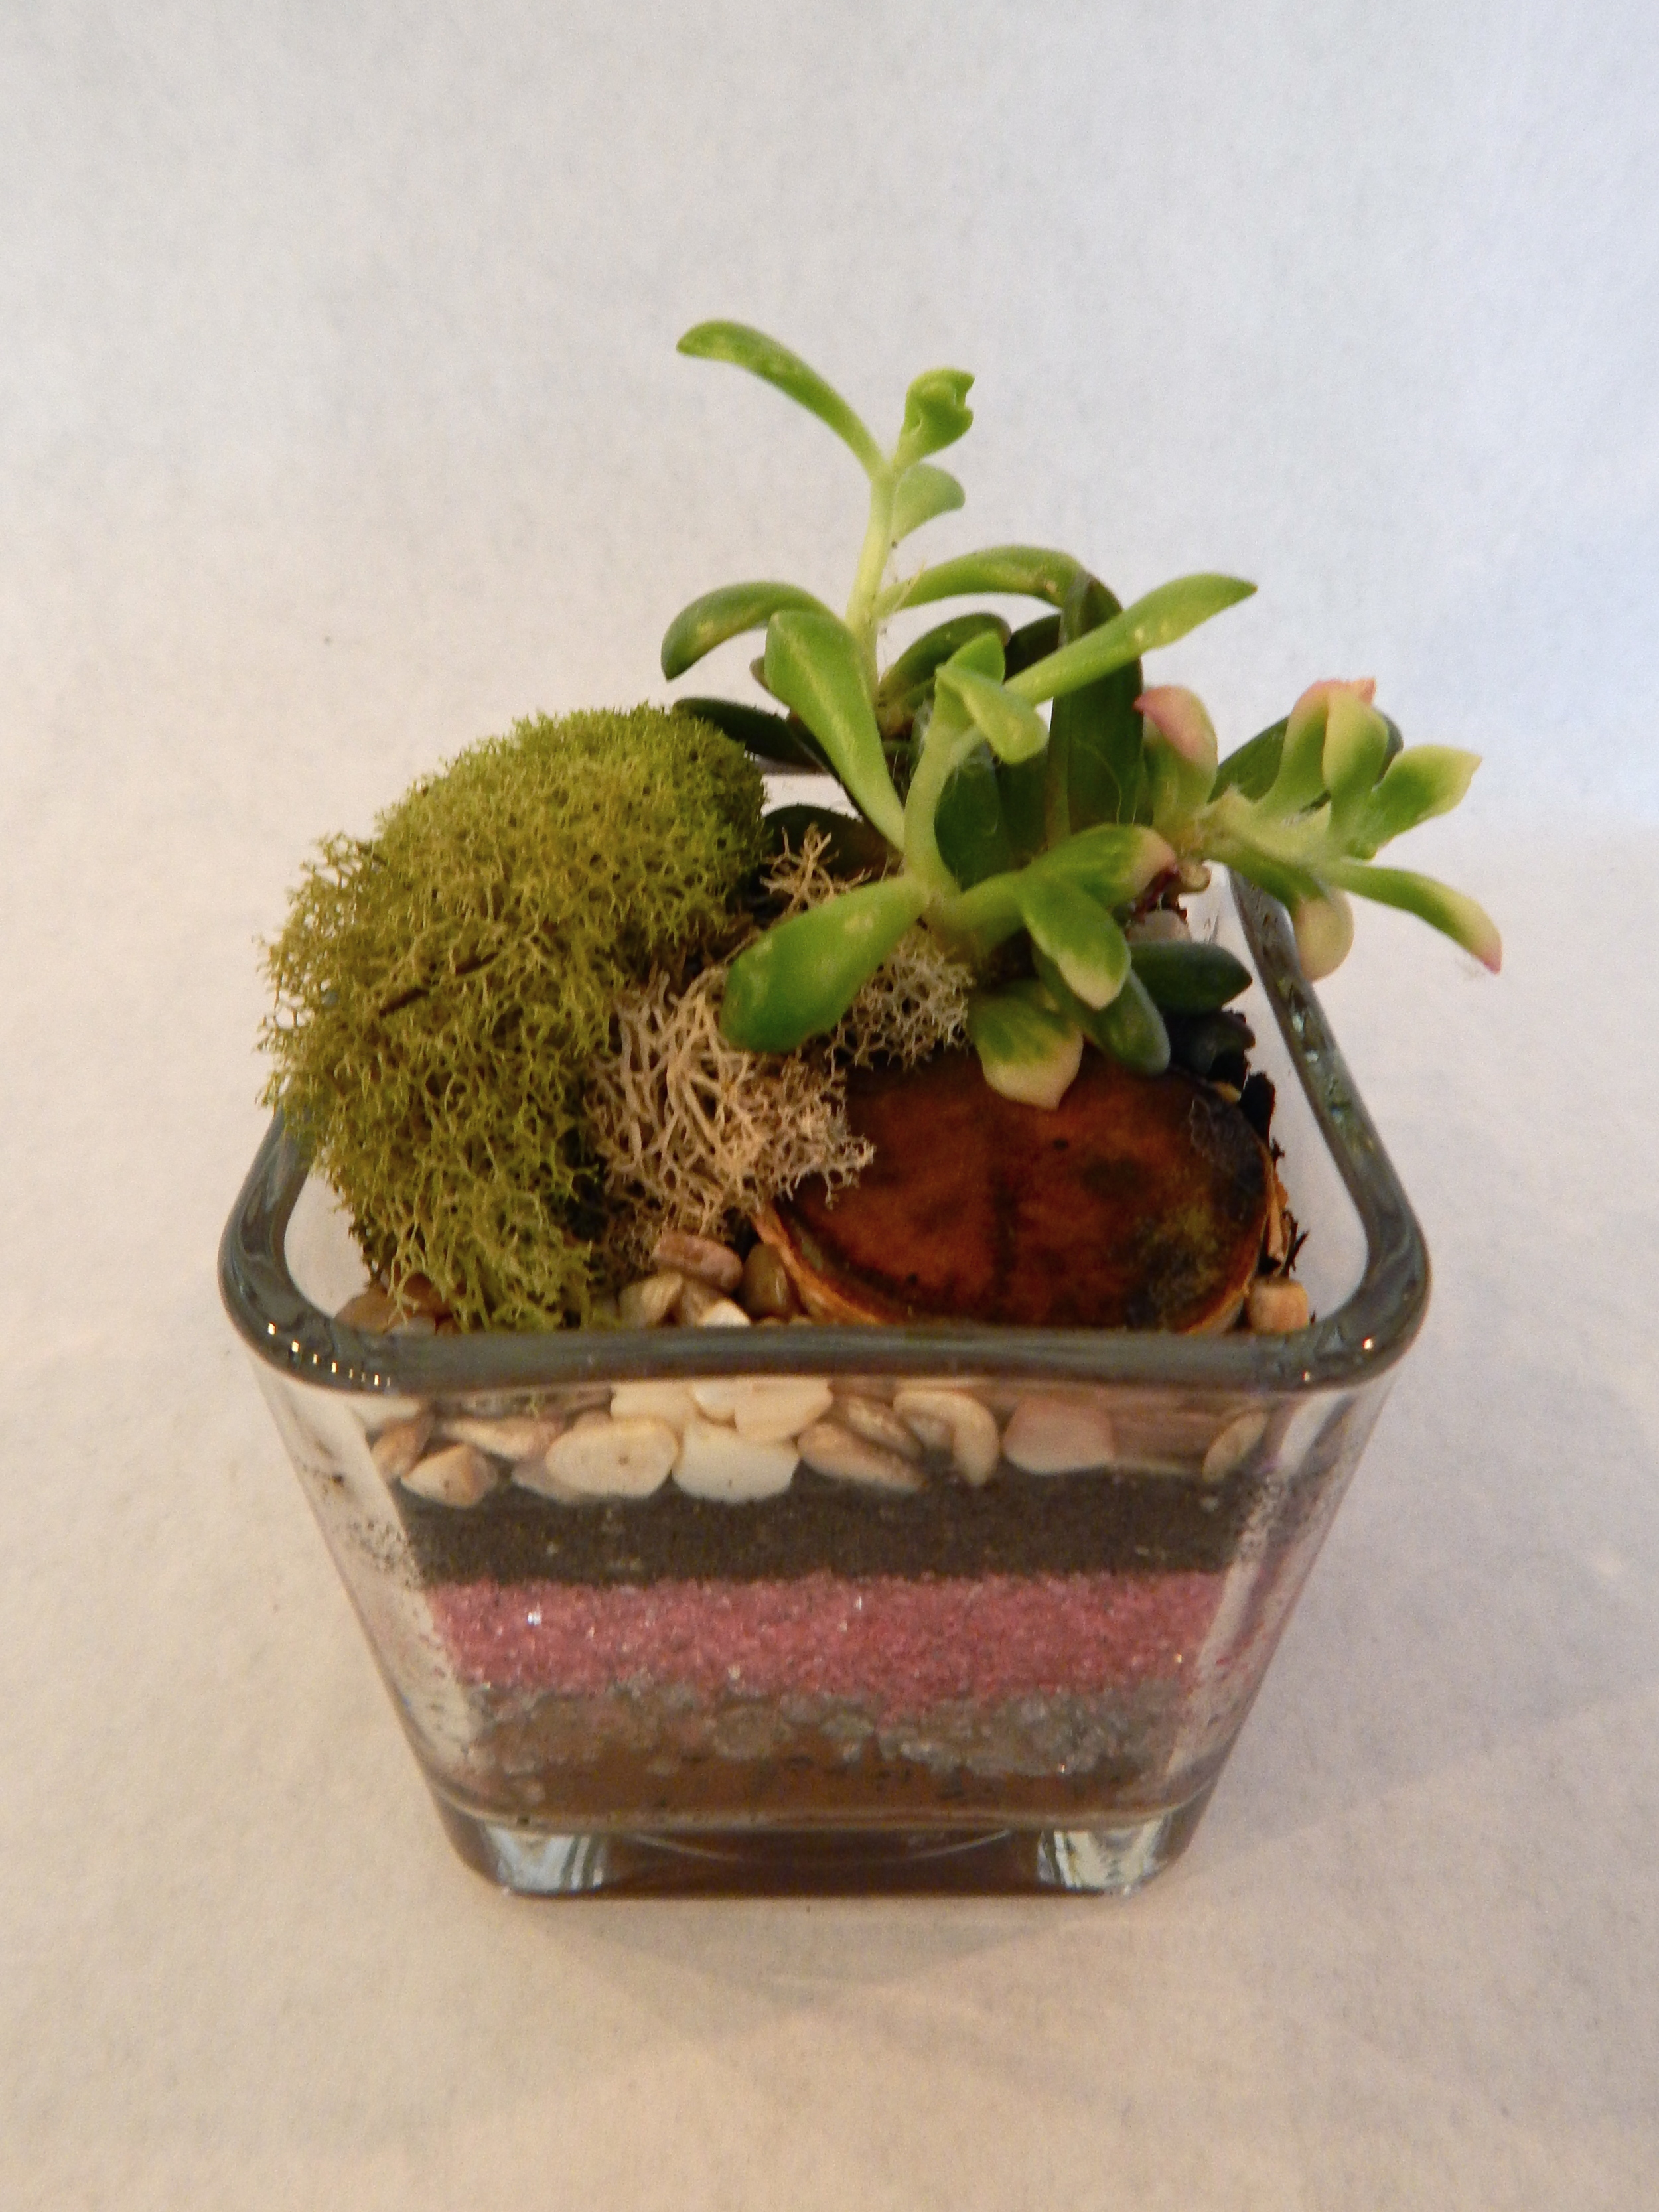 Join us for one of our terrific terrarium classes where you will make your own mini habitat and learn about succulent care, propagation, and more!